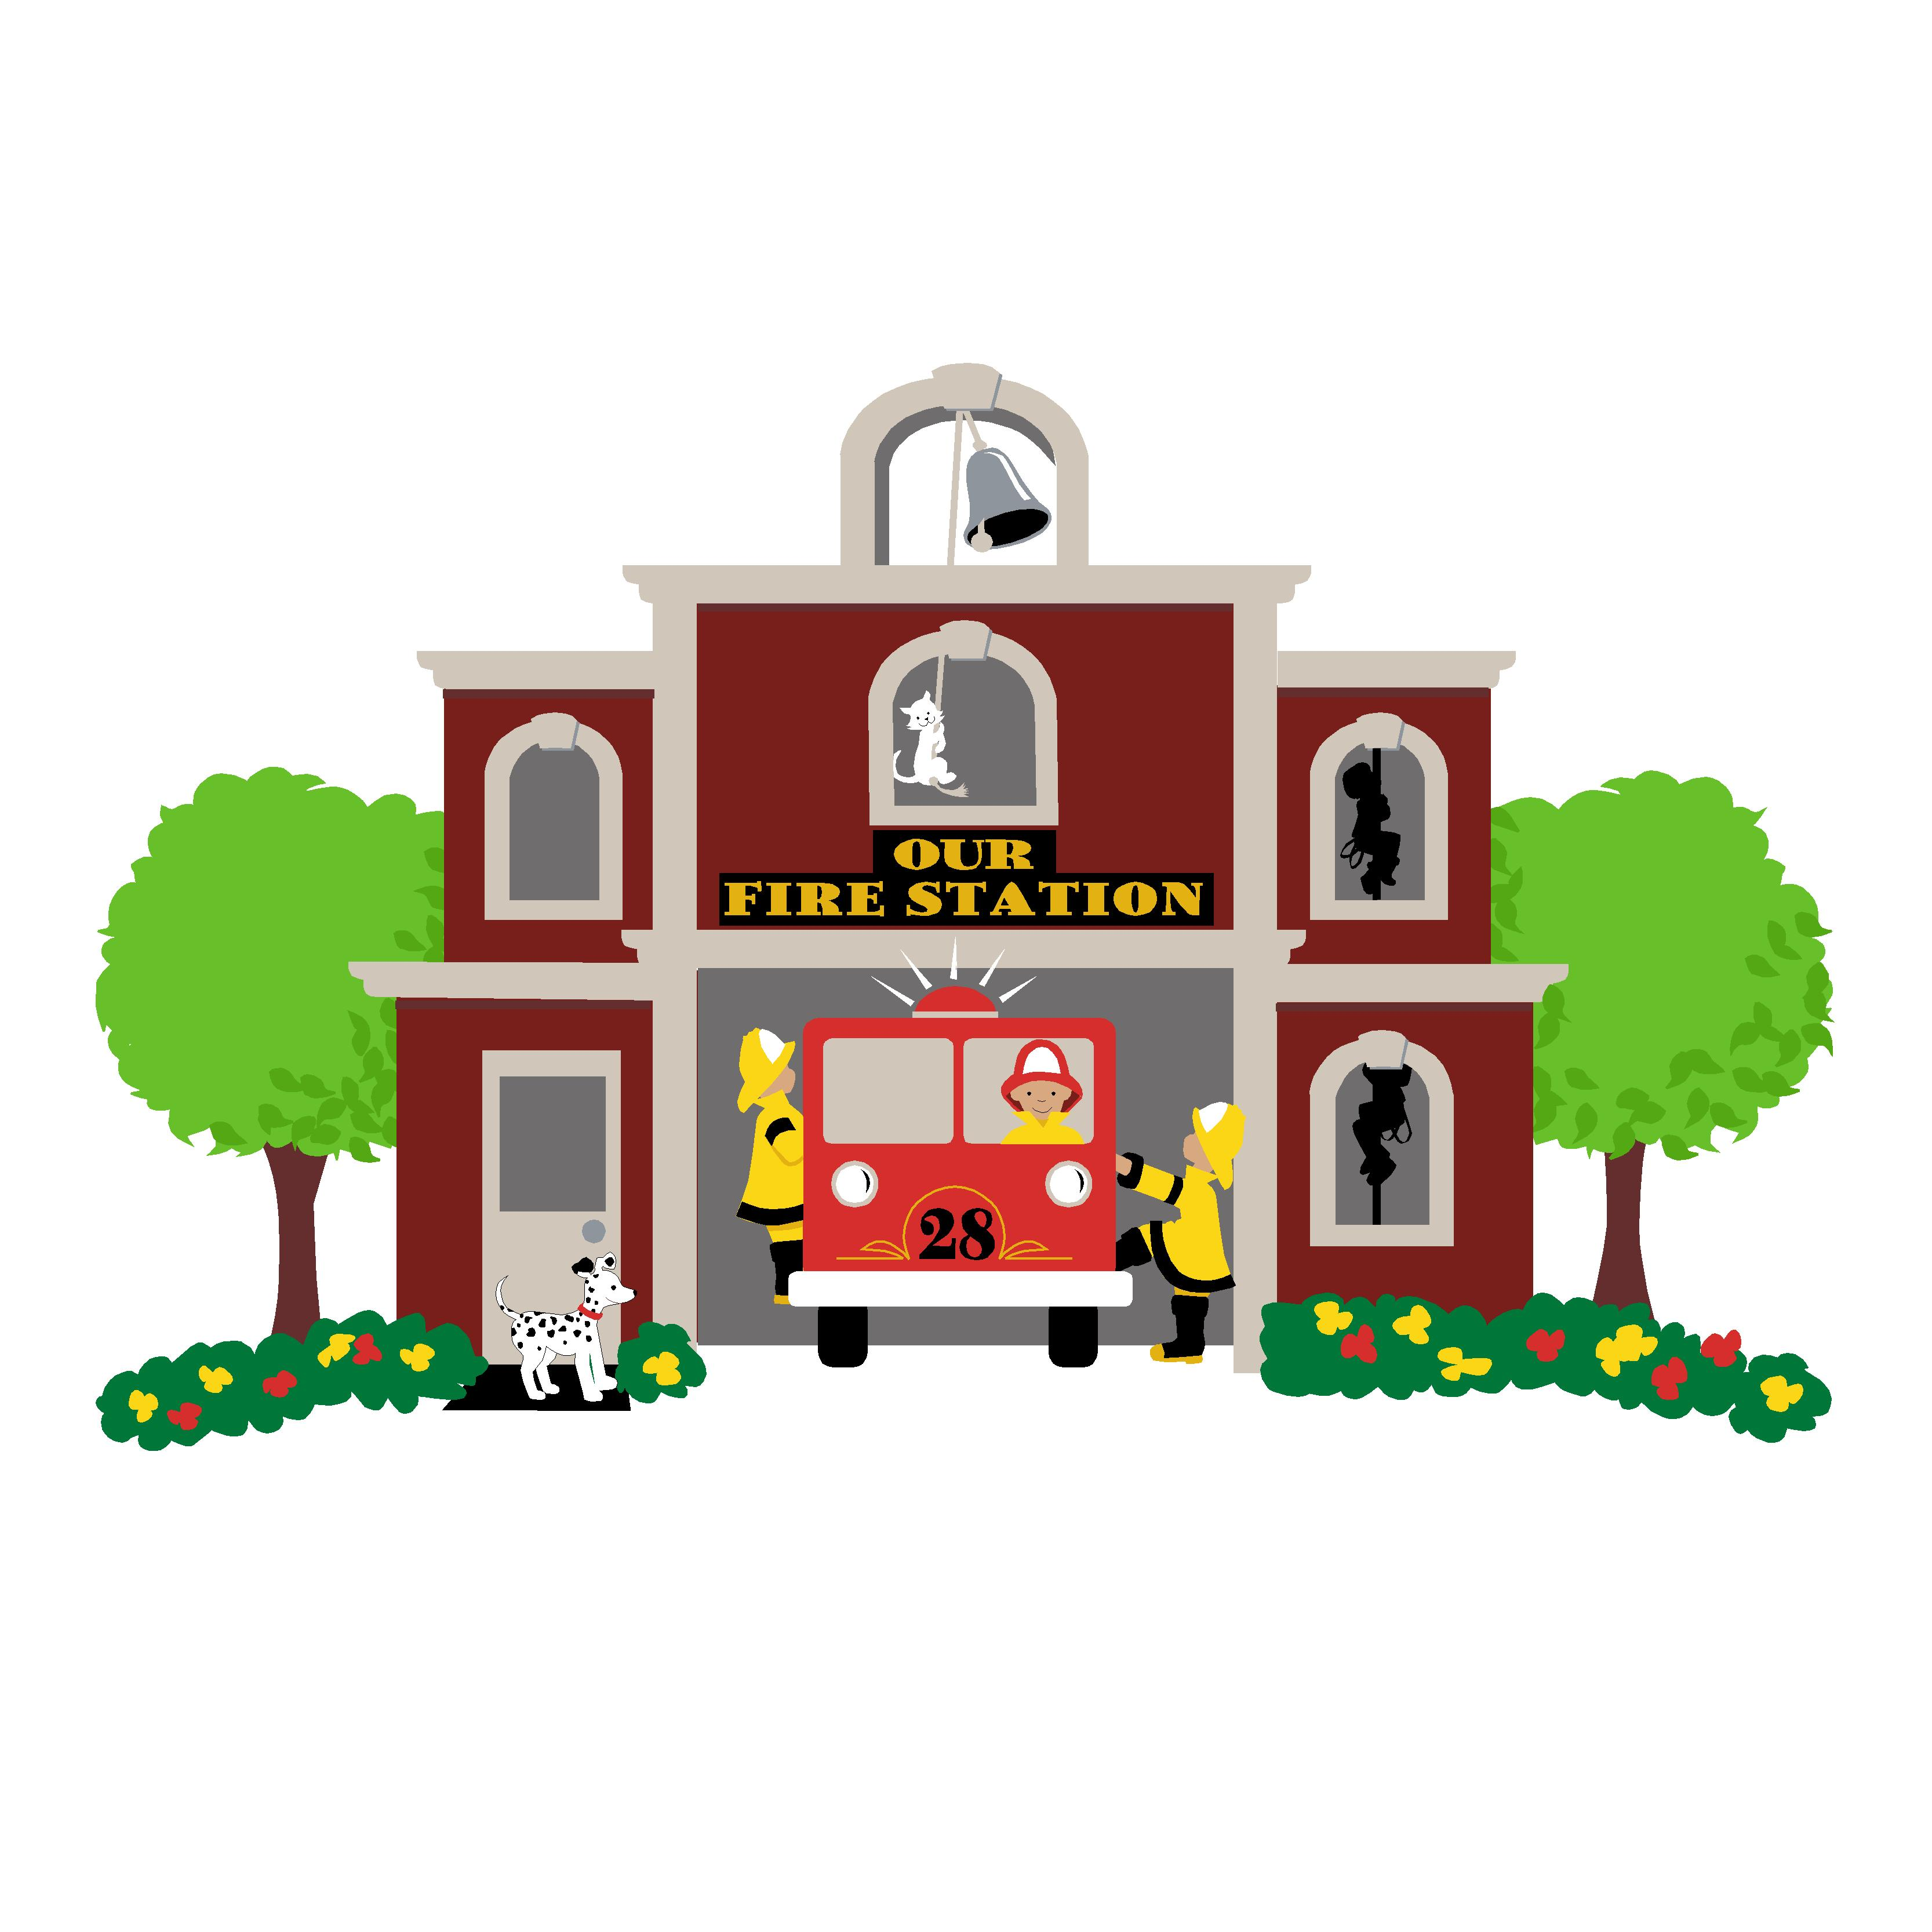 Fire Station Clipart Best-Fire Station Clipart Best-12